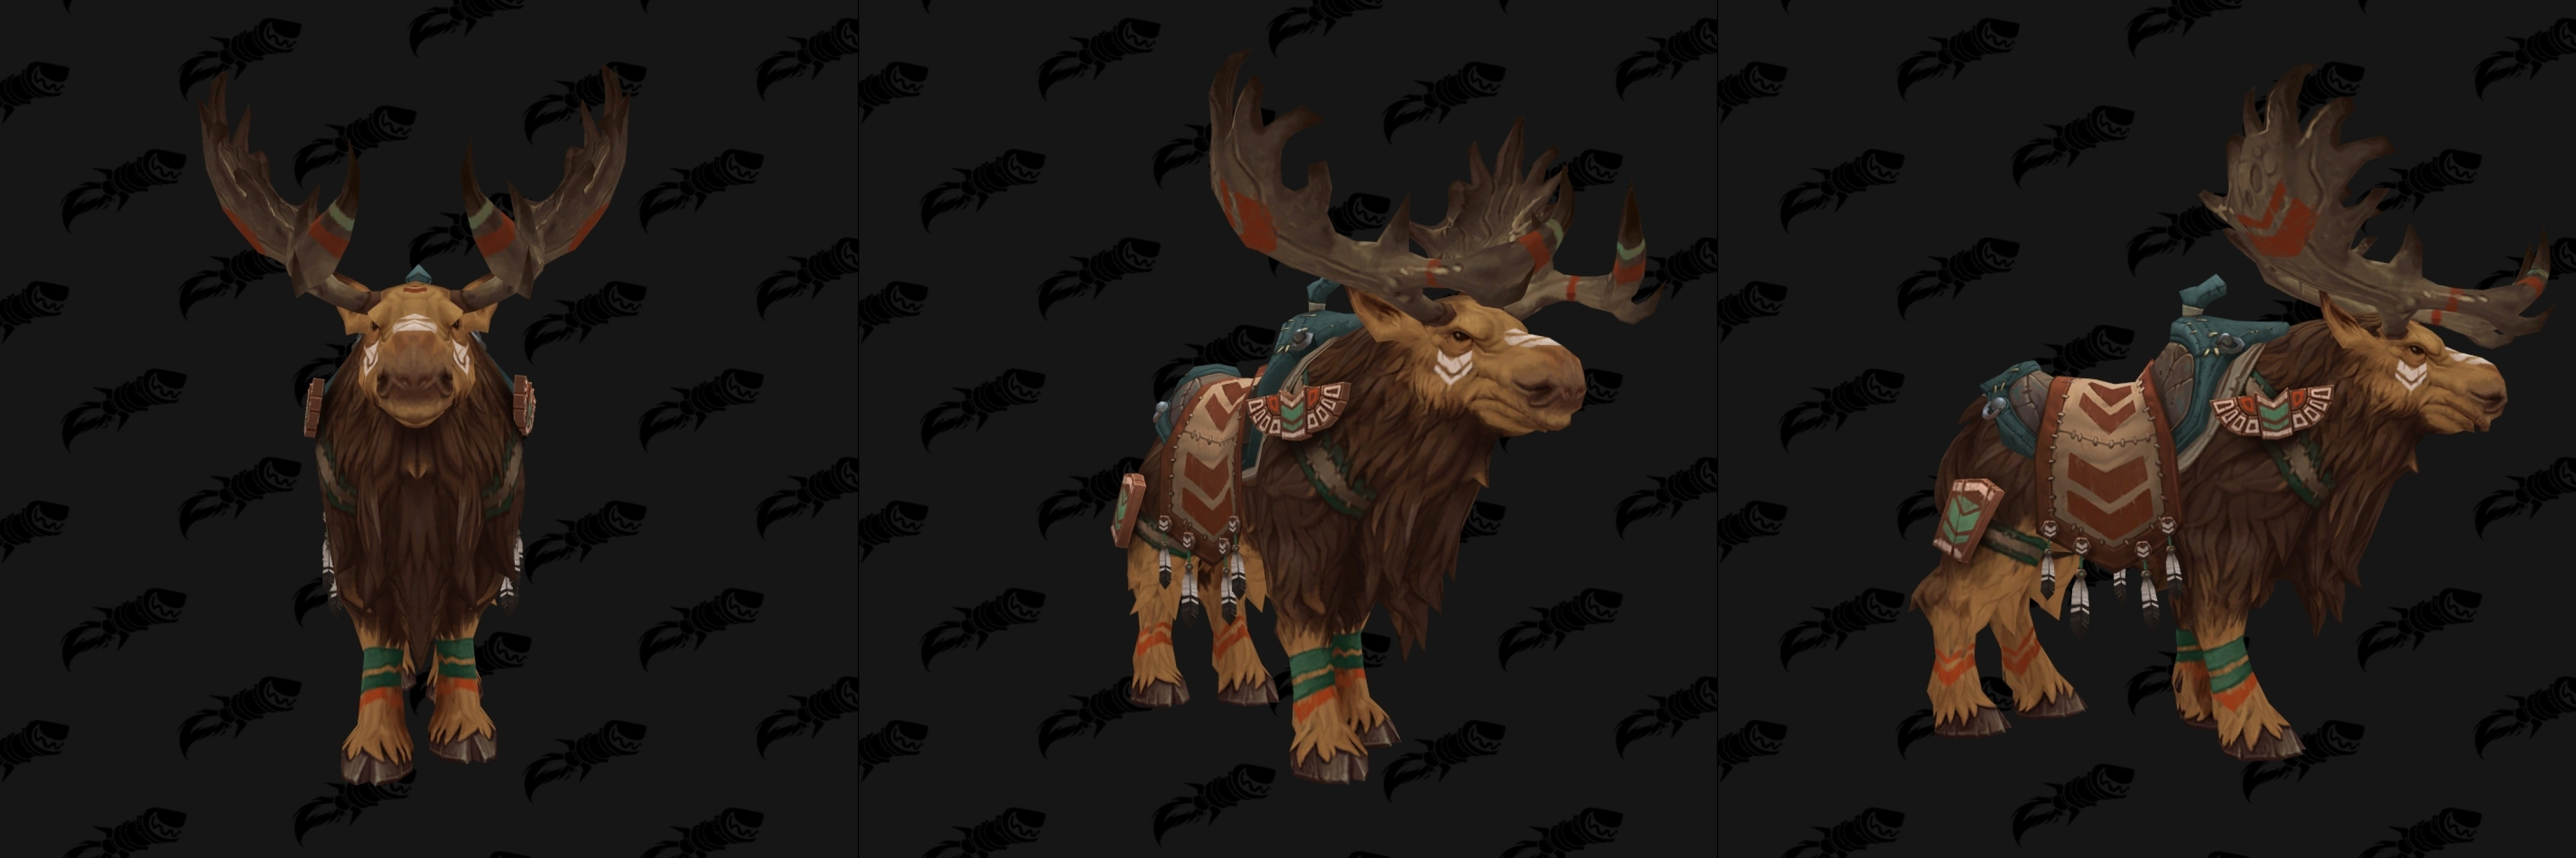 Highmountain tauren allied race druid forms totems and racial new mount nvjuhfo Choice Image